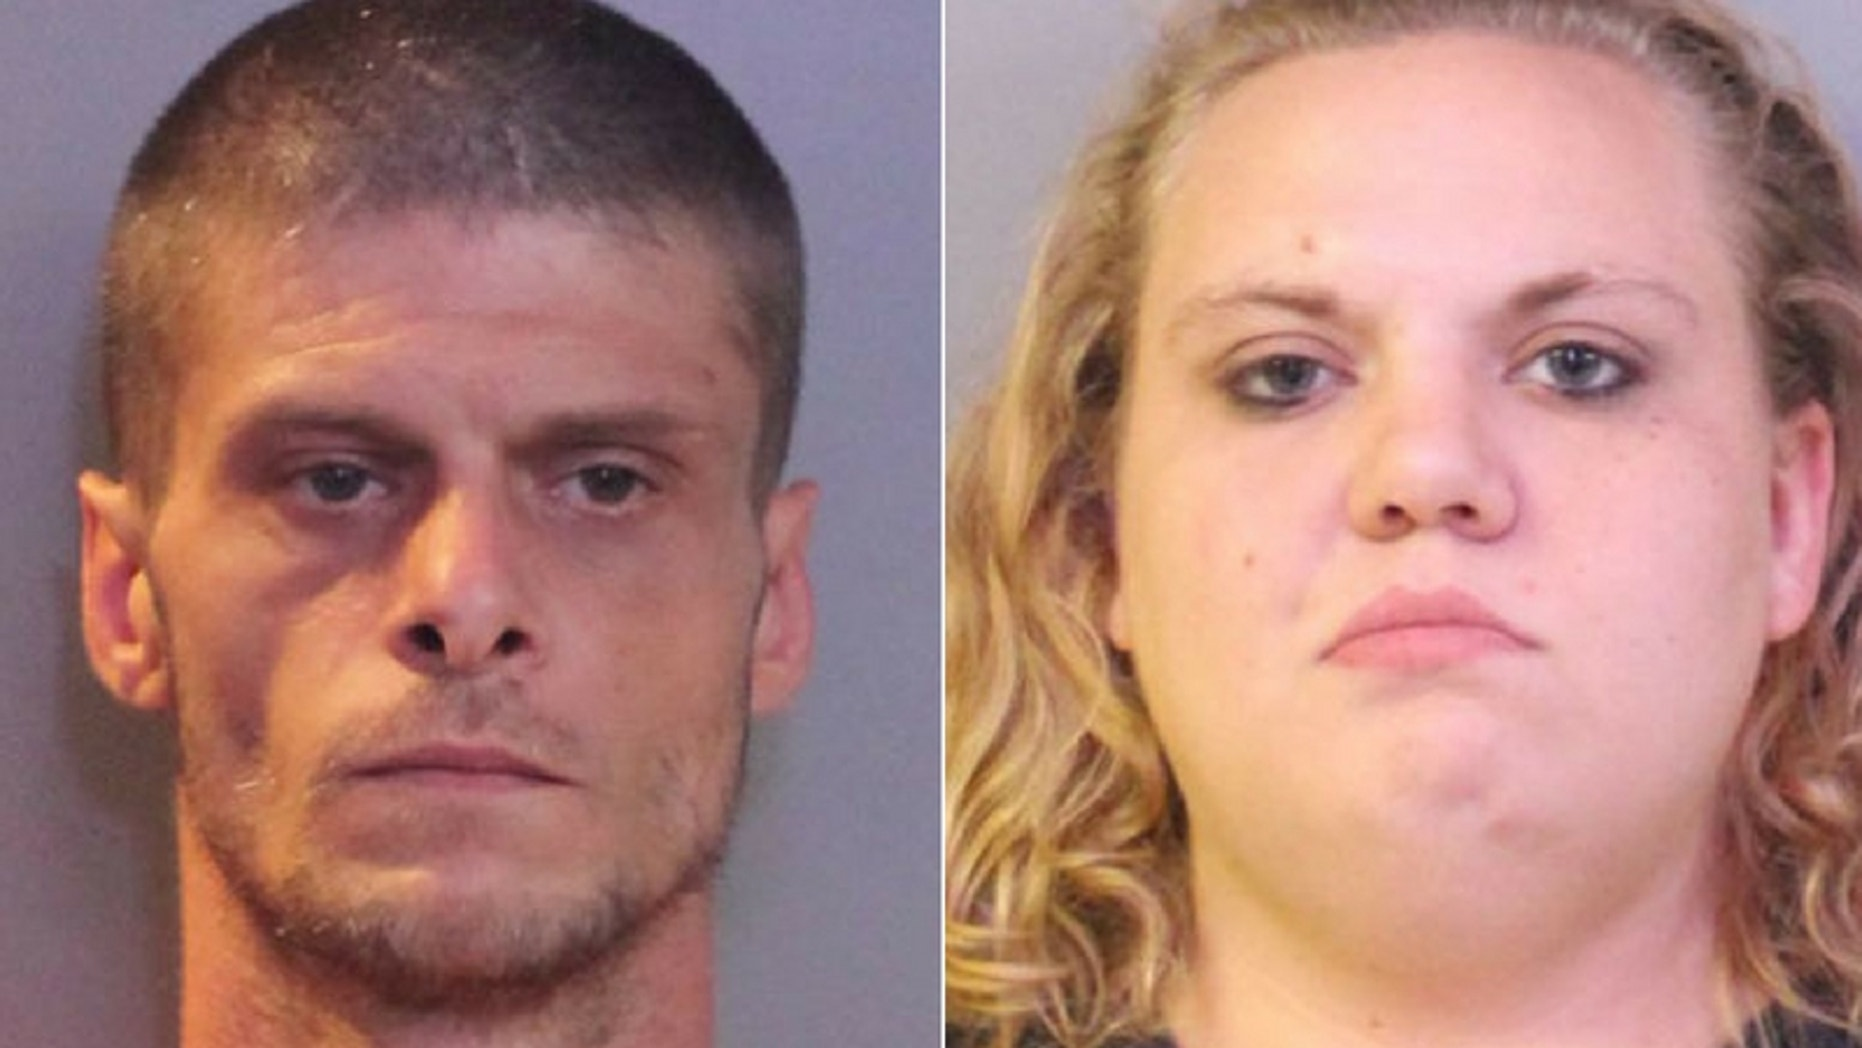 Shaun Sparks, left, and Christy Vincent were arrested on Sunday for allegedly killing an alligator and trying to sell its tail in a Florida neighborhood.